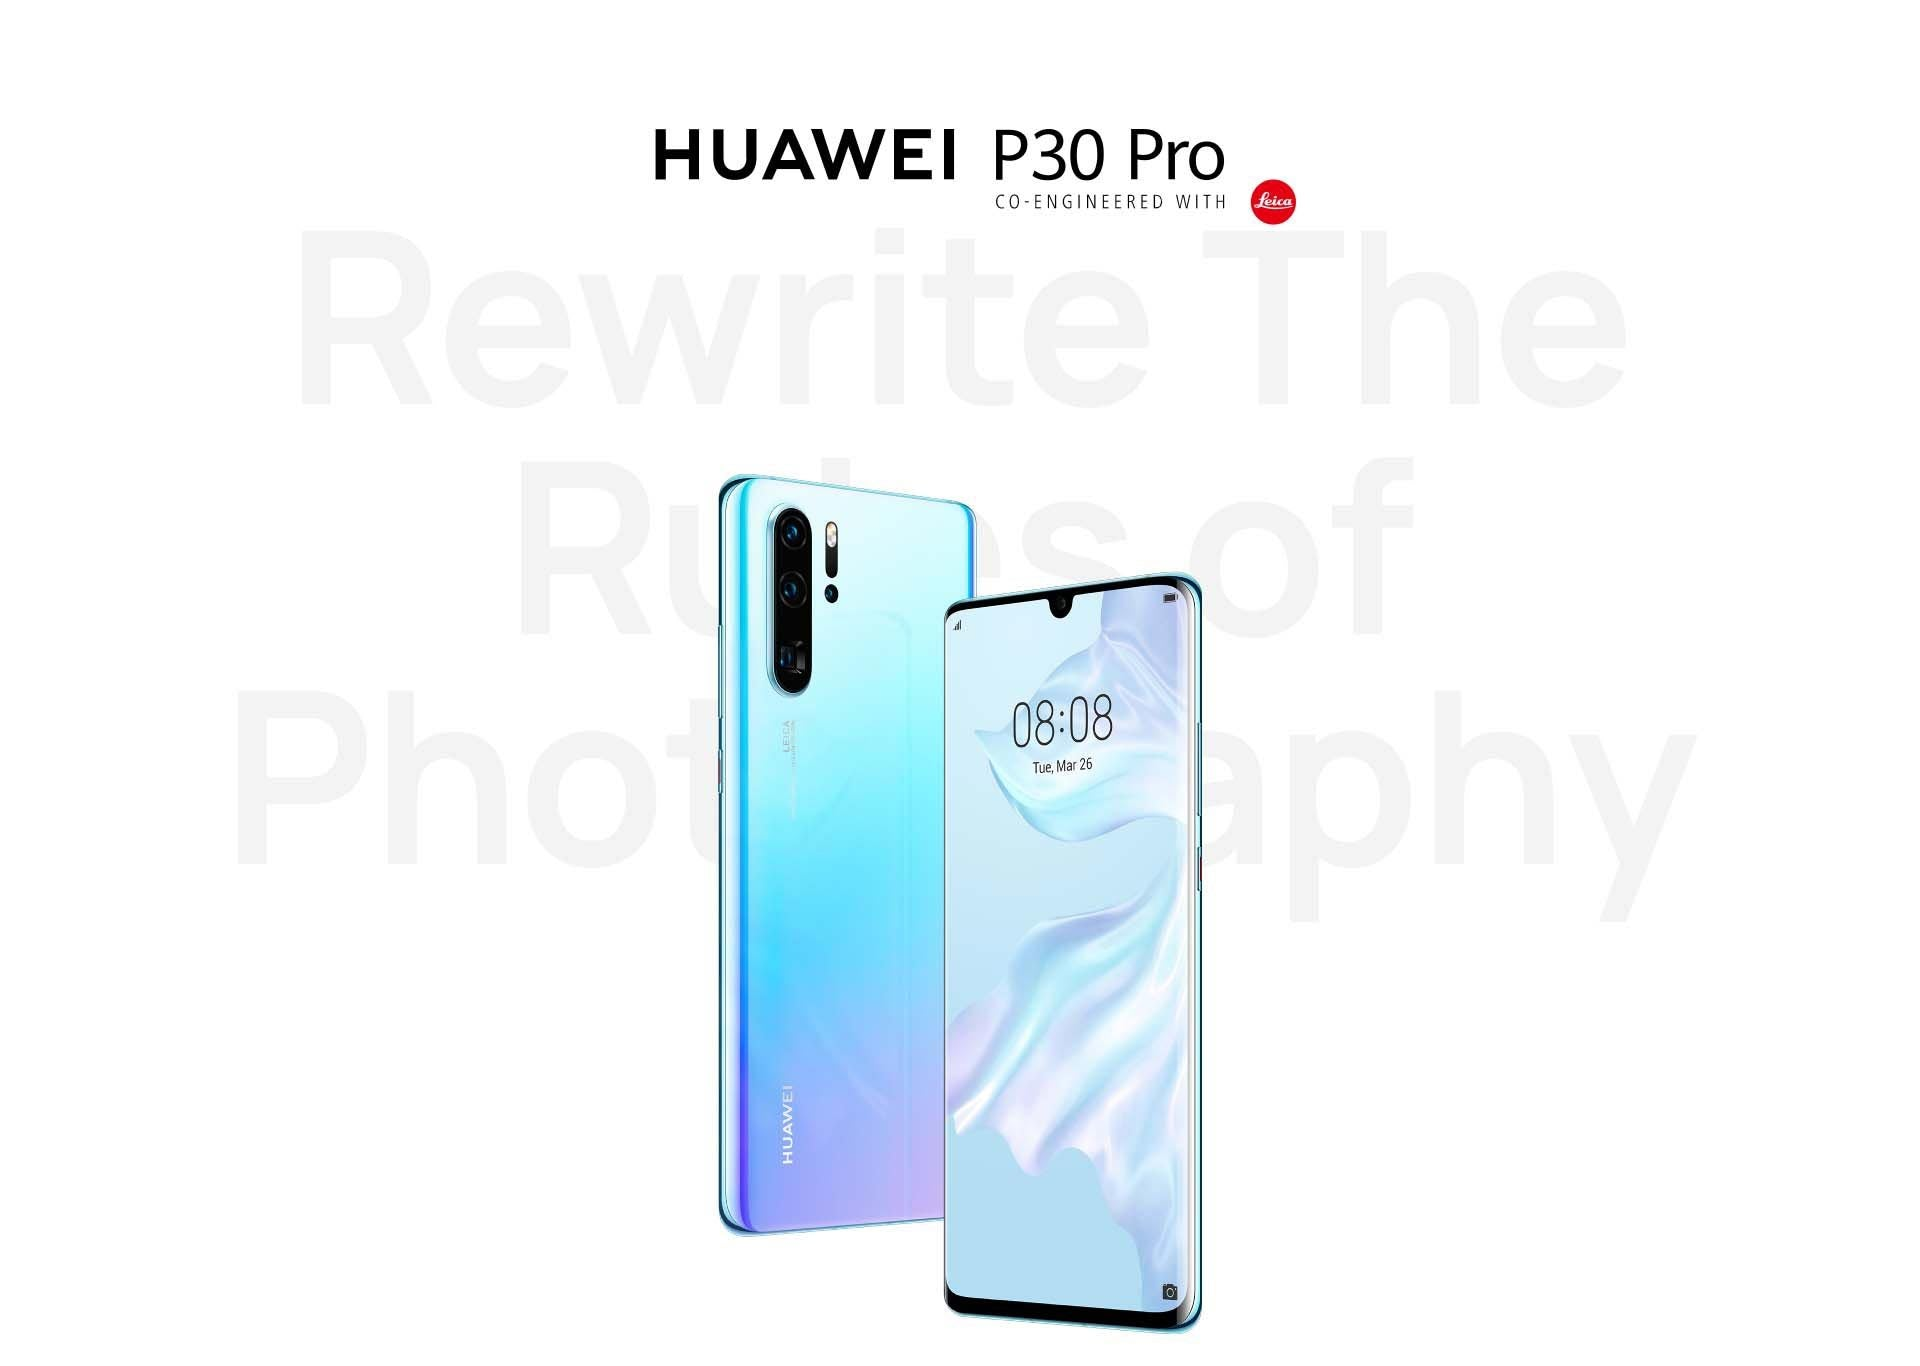 HUAWEI P30 Pro 256GB - Latest Living